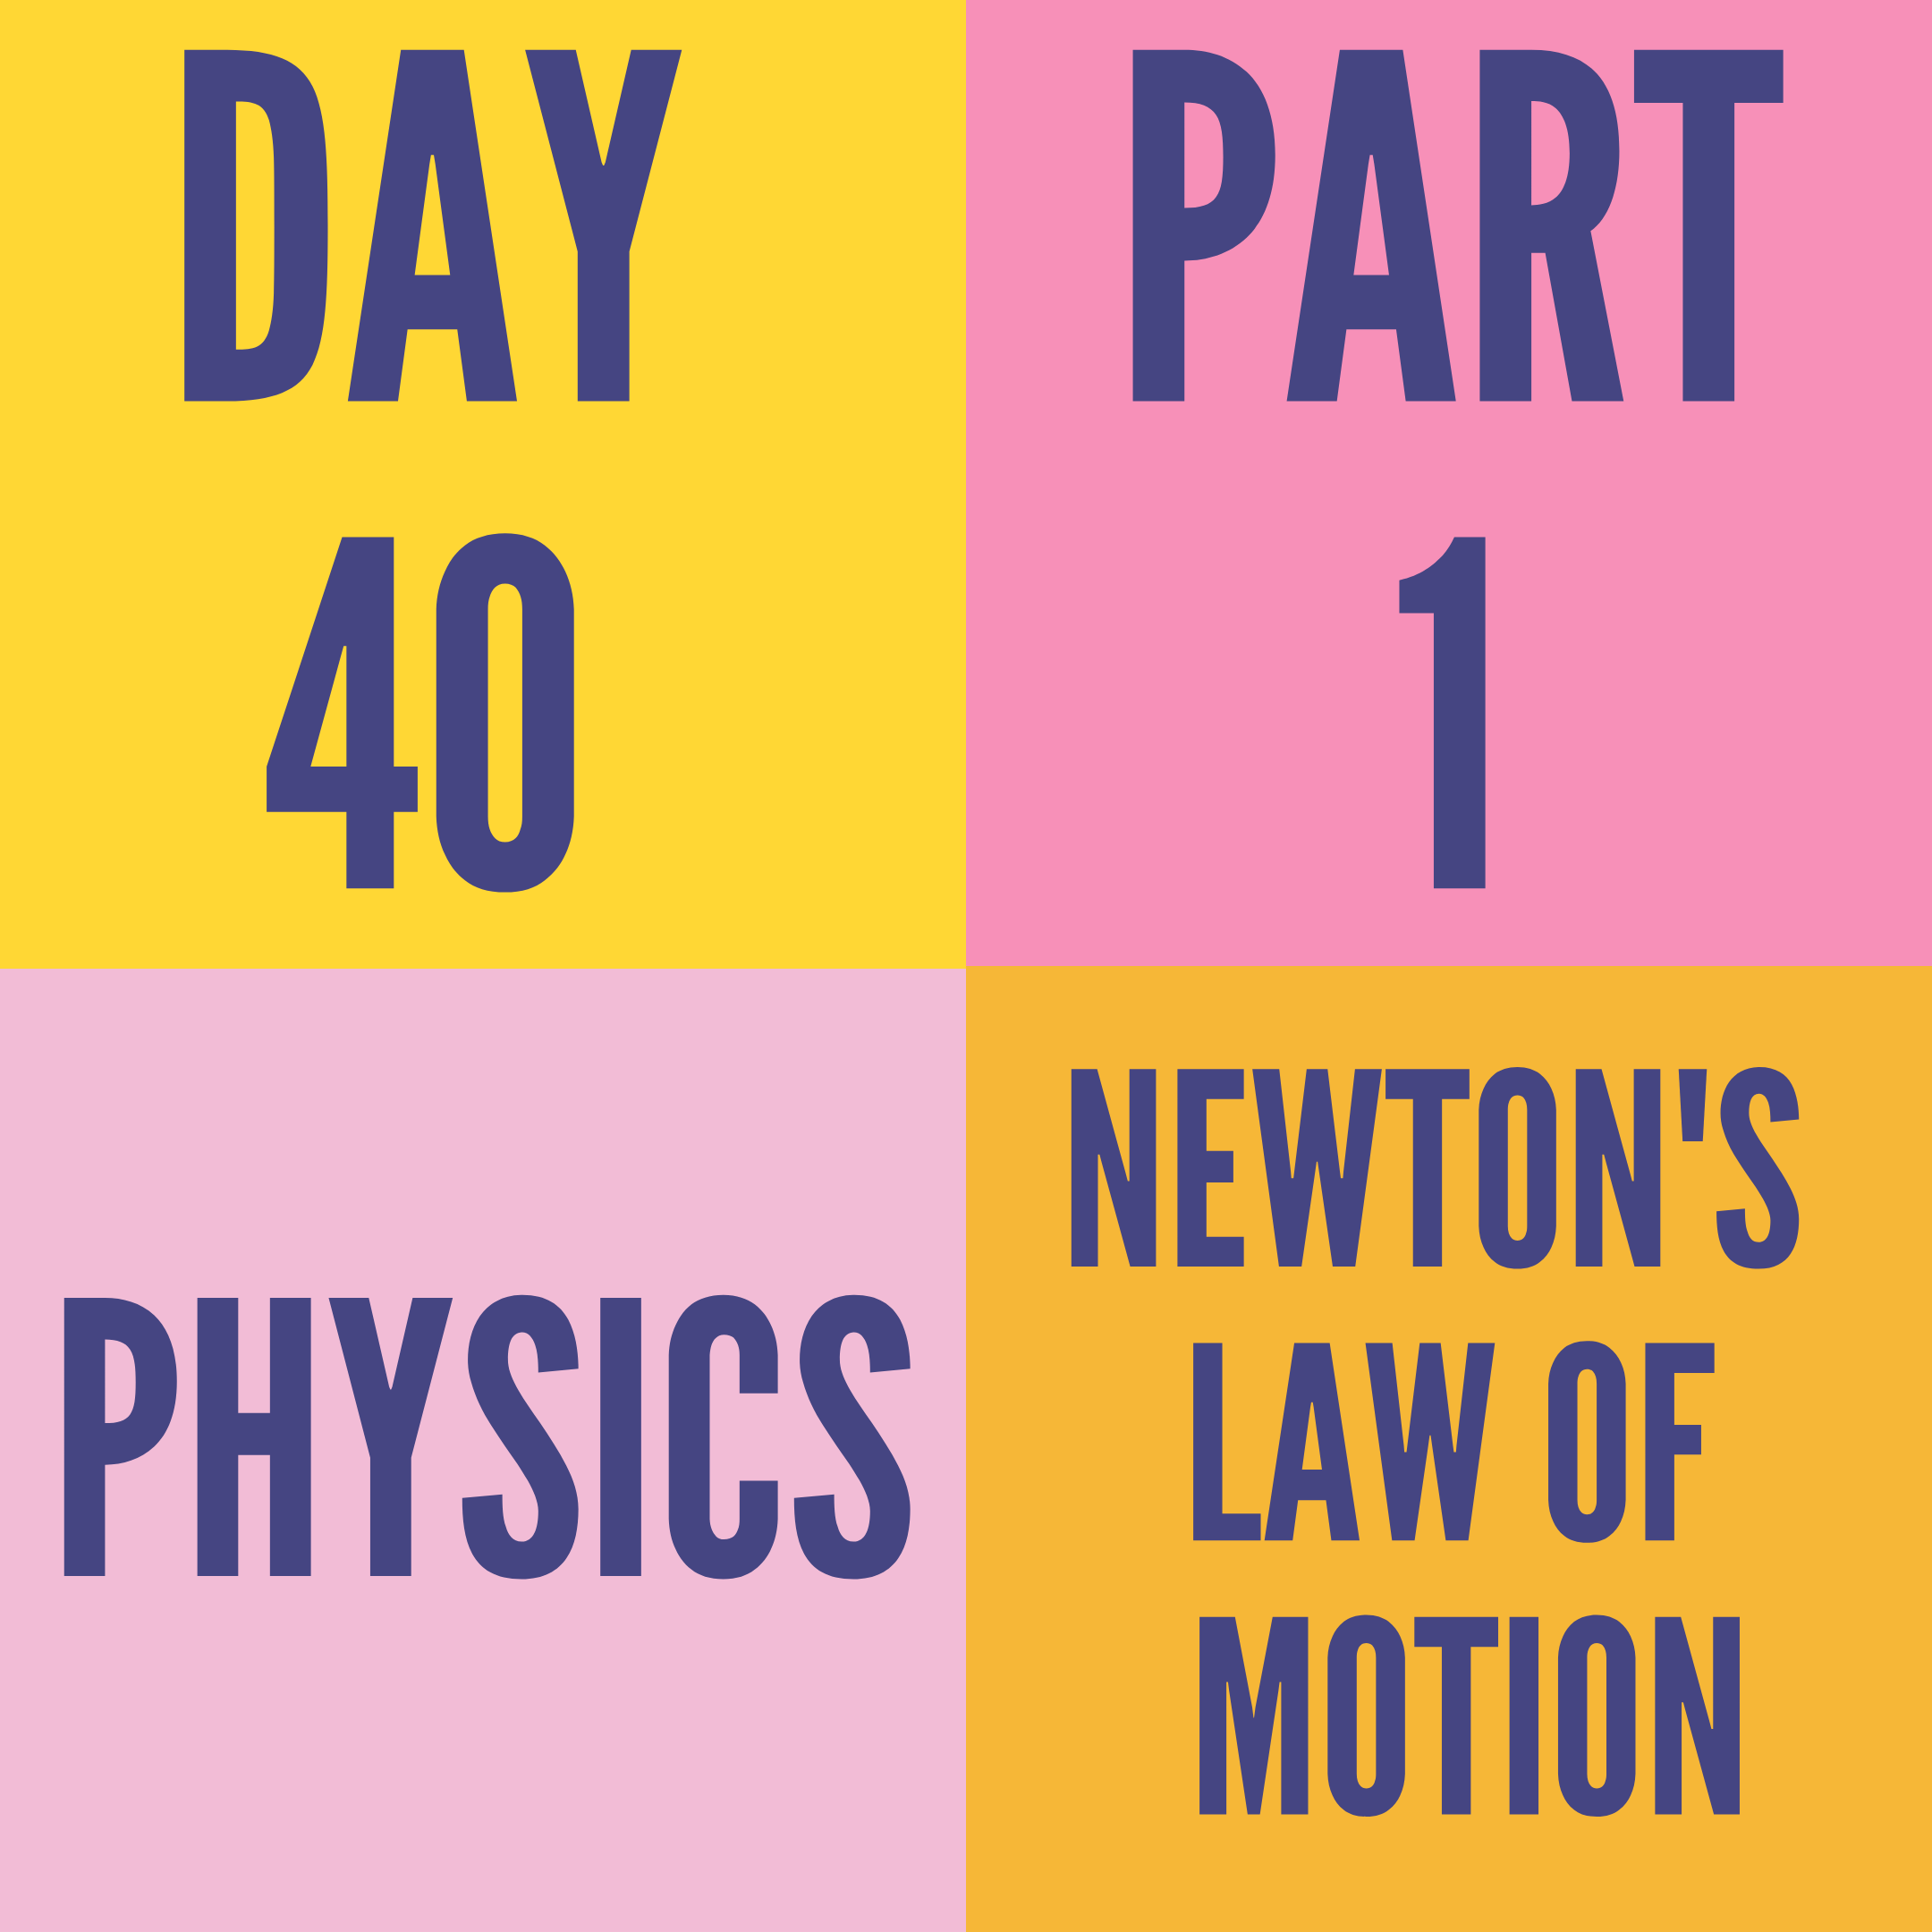 DAY-40 PART-1 NEWTON'S LAW OF MOTION